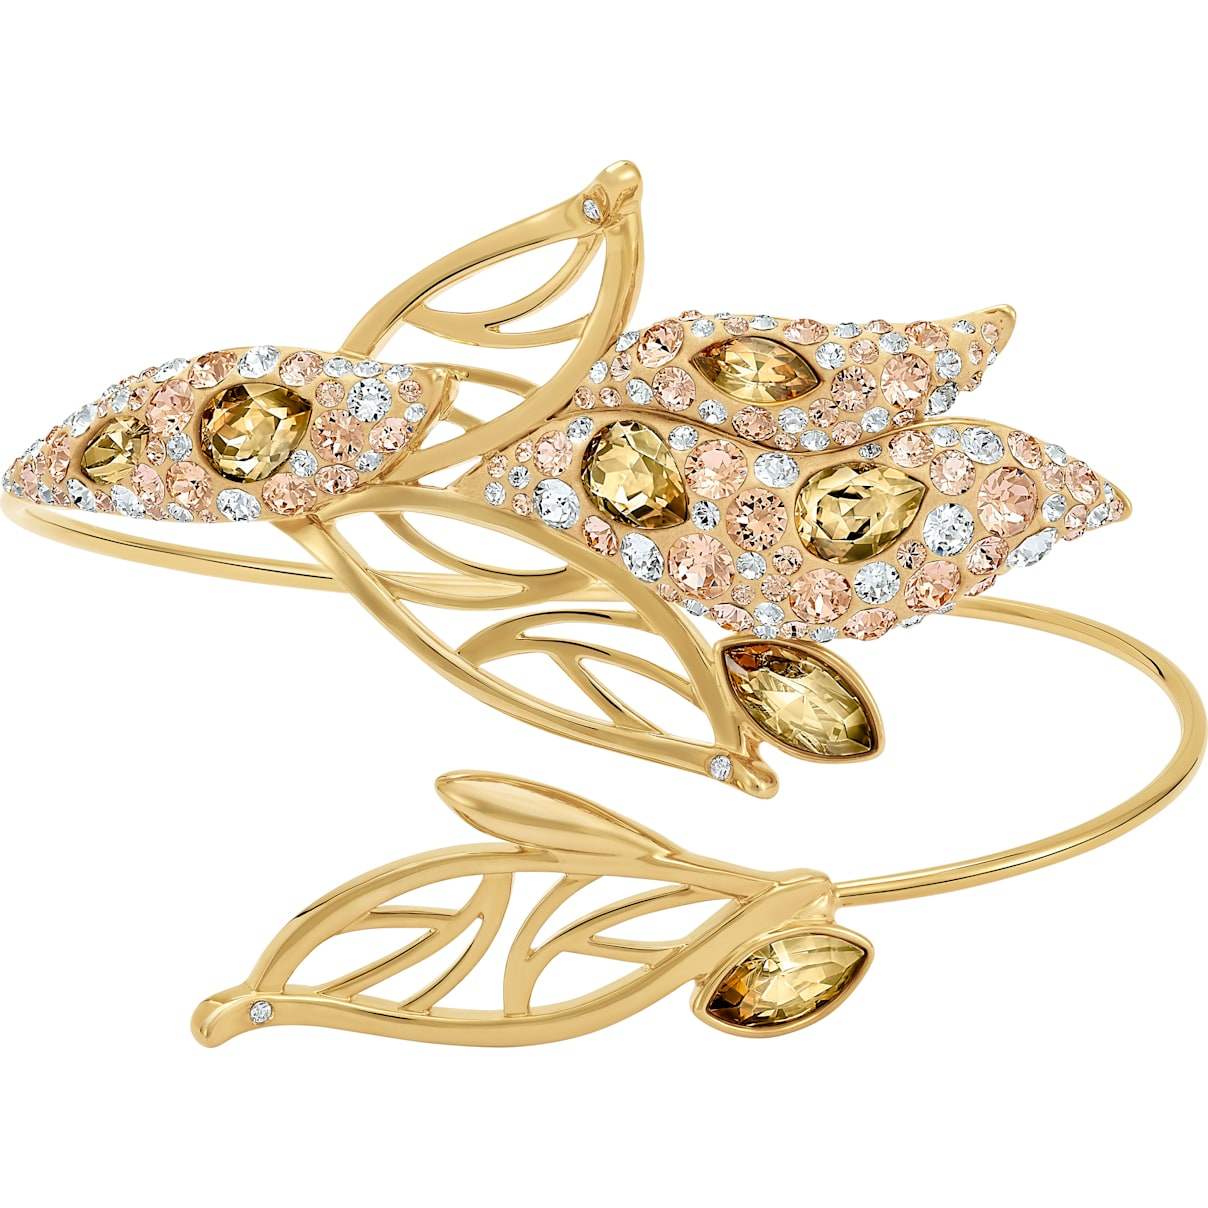 Swarovski Graceful Bloom Cuff, Brown, Gold-tone plated